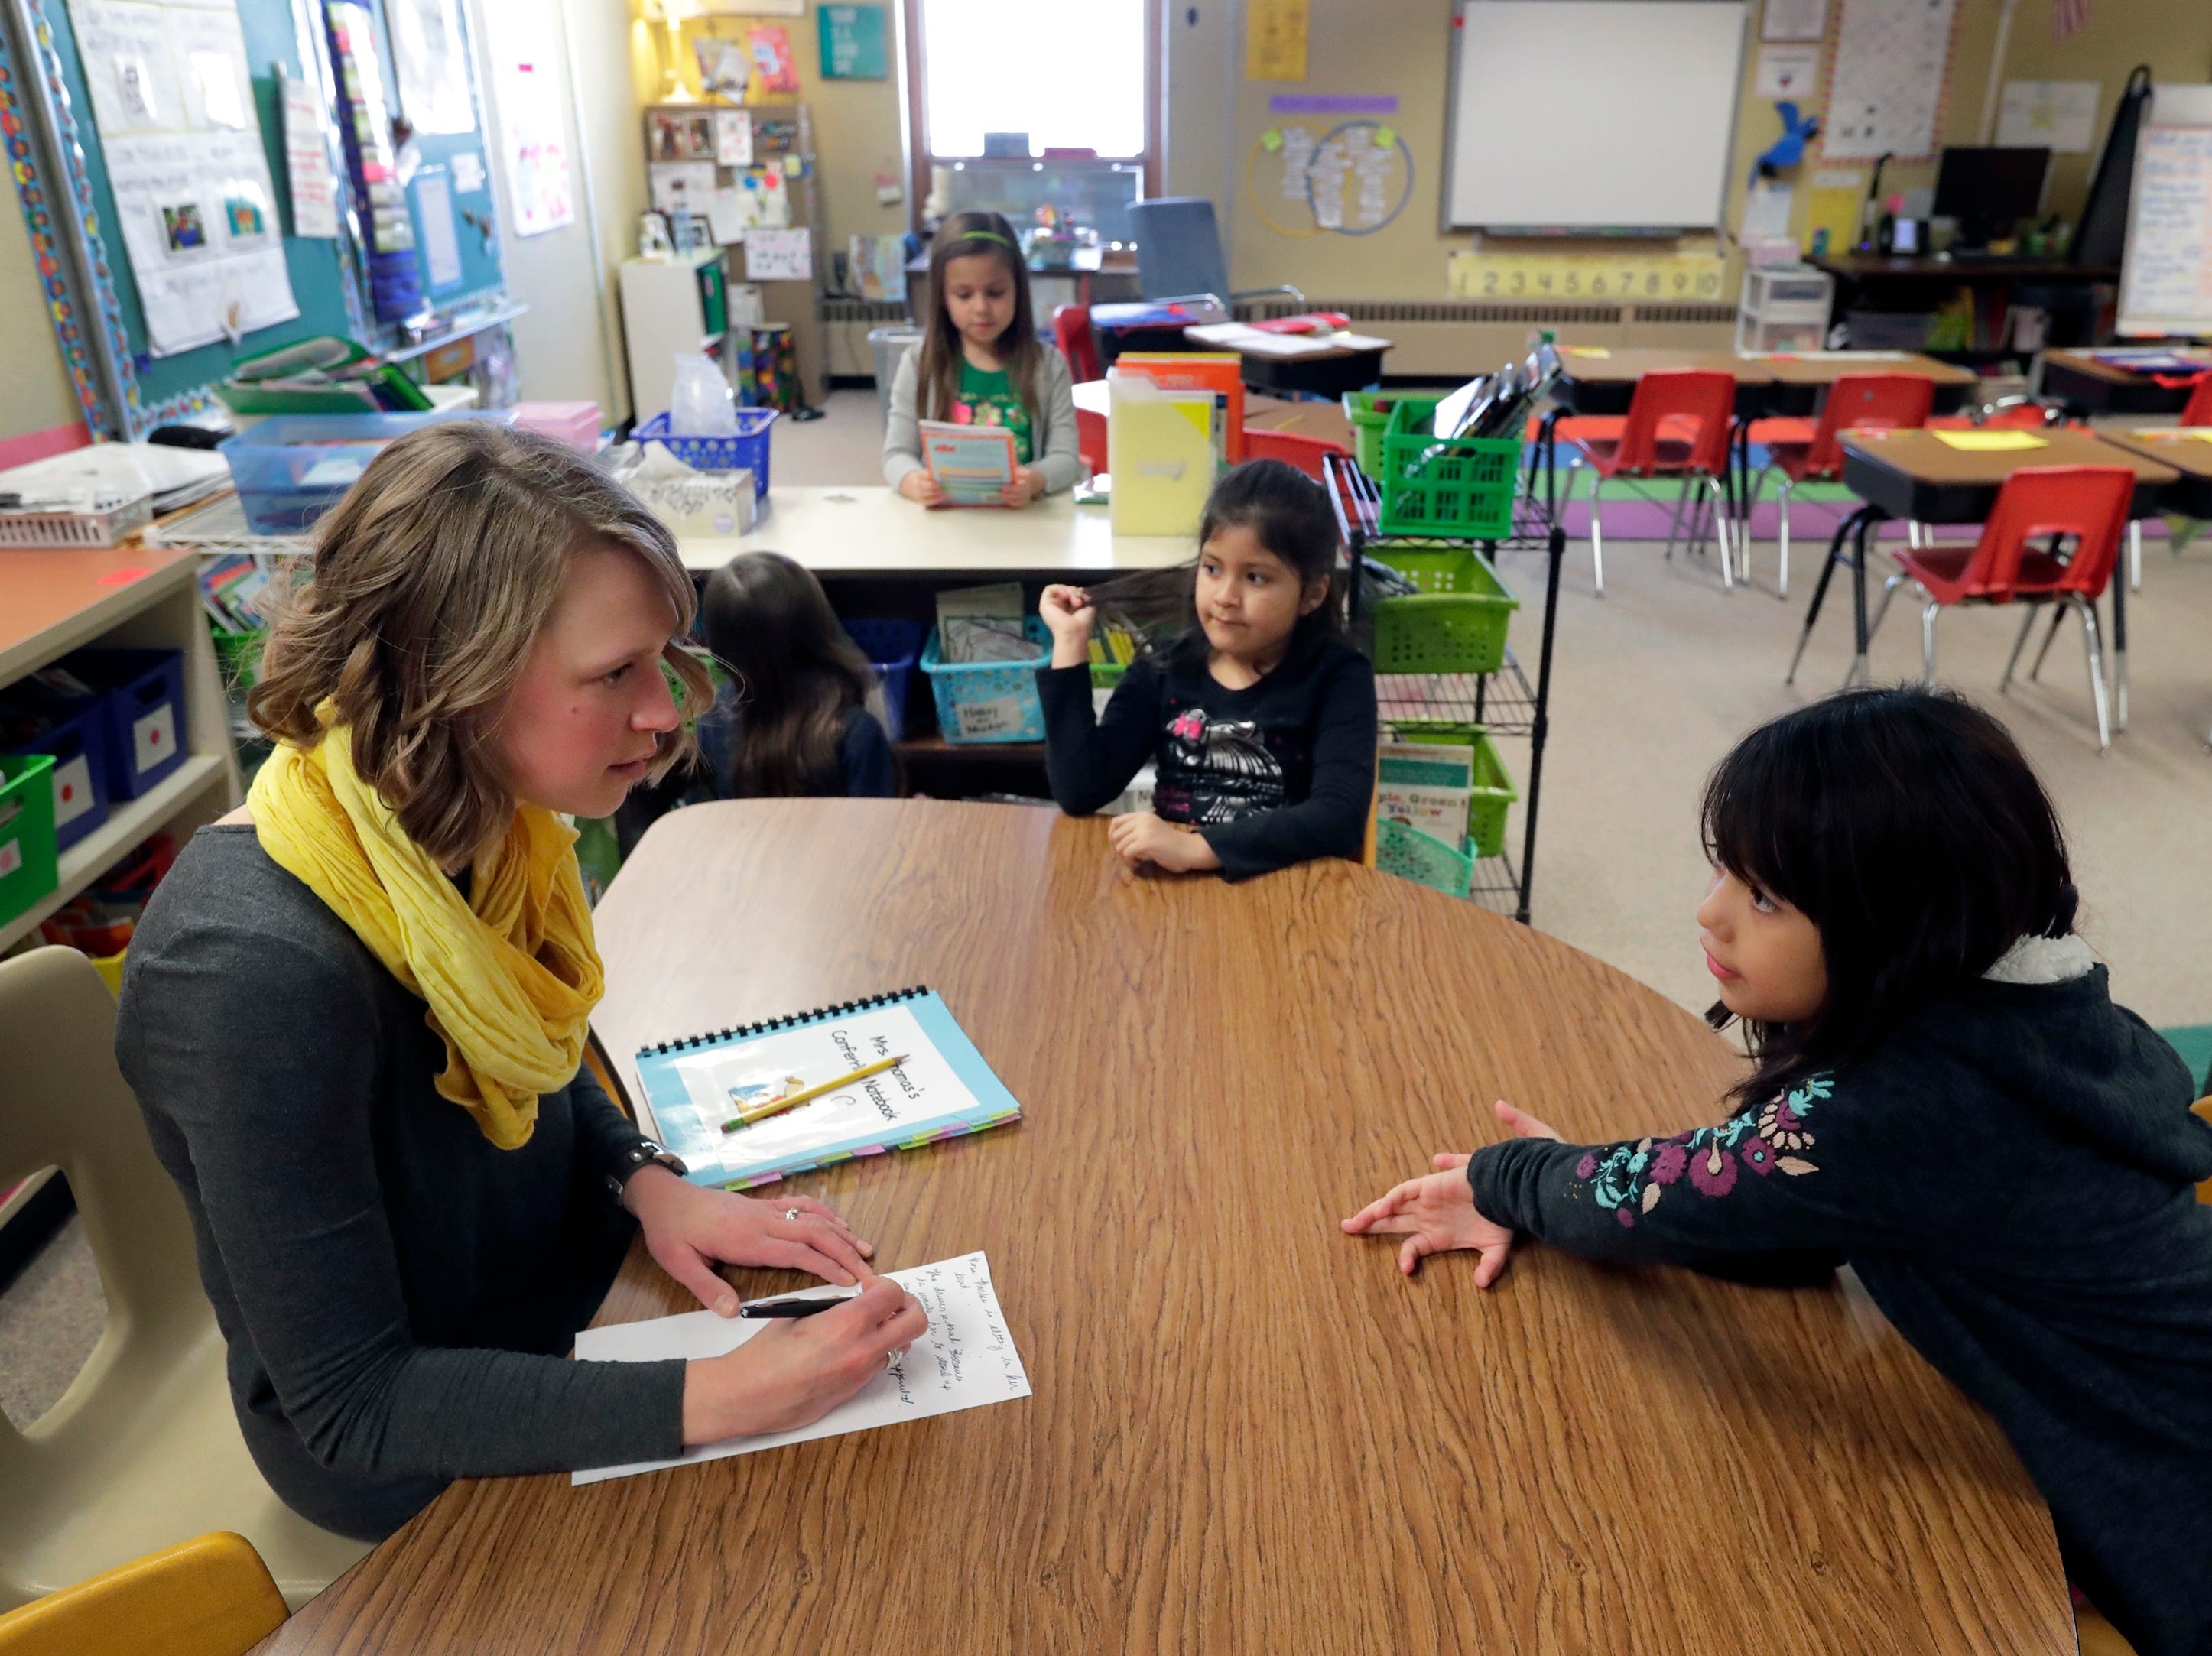 First grade teacher Emily Thomas, left, facilitates an oral language group with students Lizbeth Garcia Vera and Stephanie Lopez Rivera, right, Monday, March 4, 2019, at Horizons Elementary School in Appleton, Wis. Dan Powers/USA TODAY NETWORK-Wisconsin